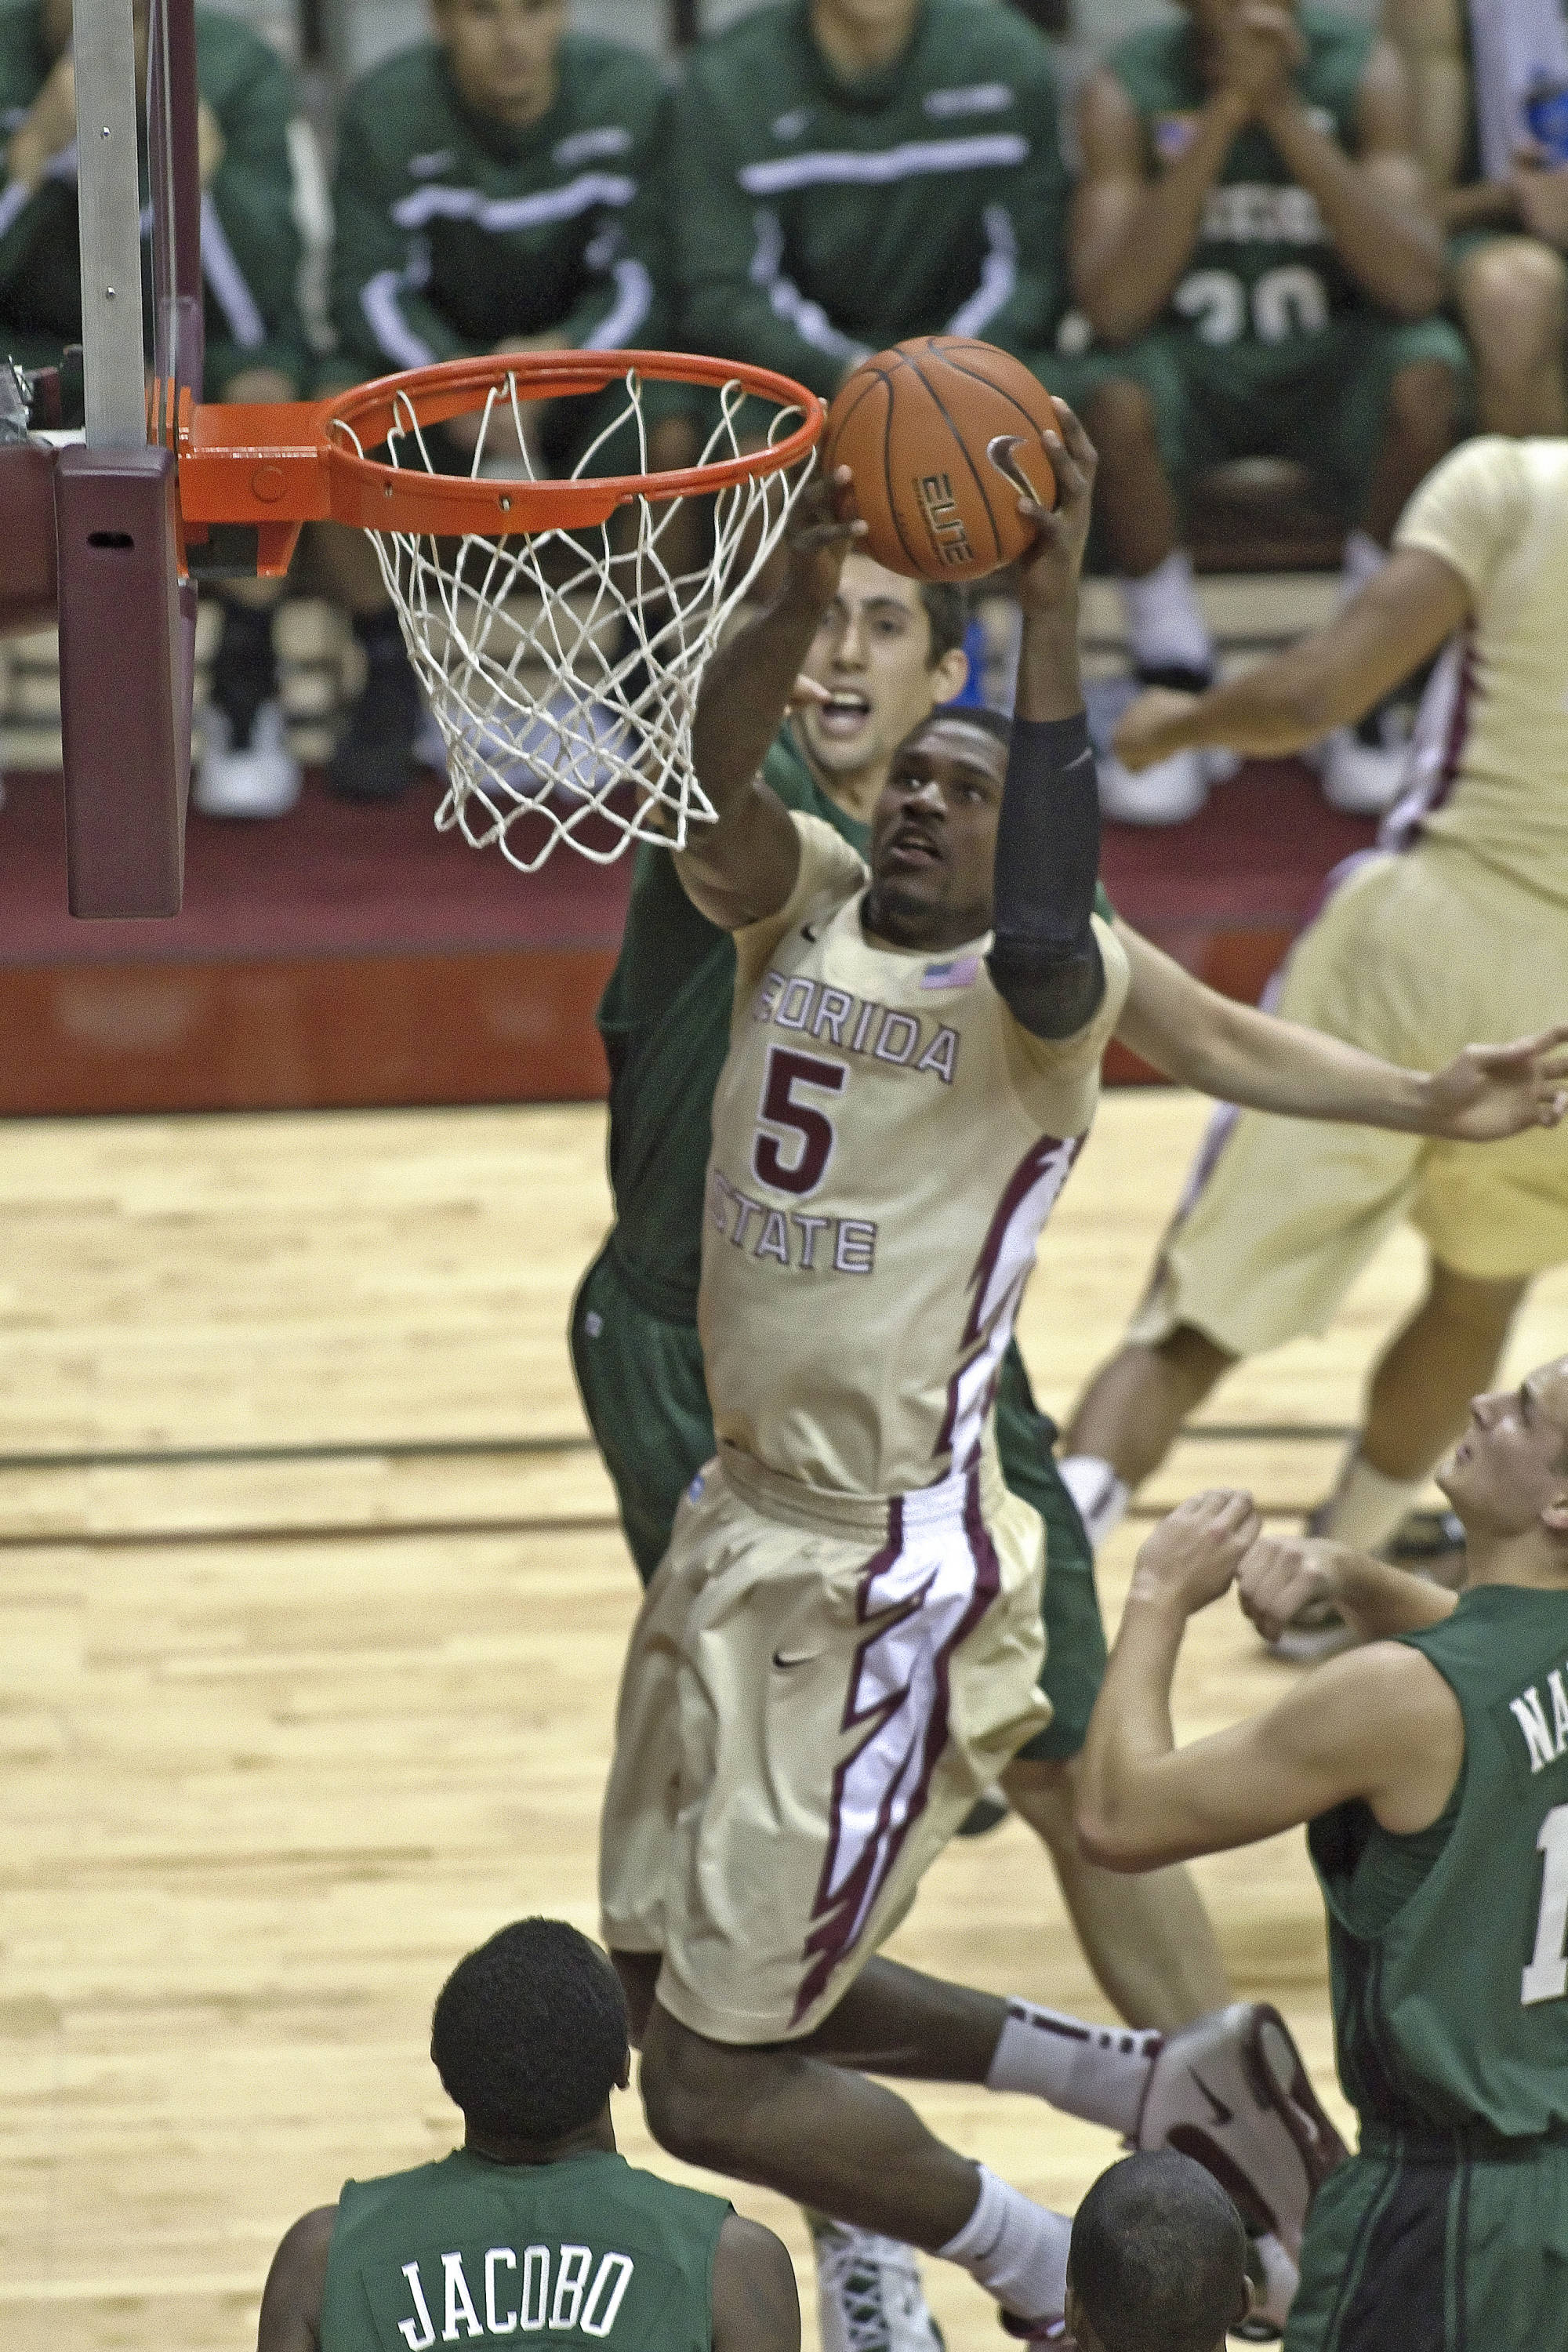 FSU vs Stetson - 12/15/2010 - Bernard James (5)